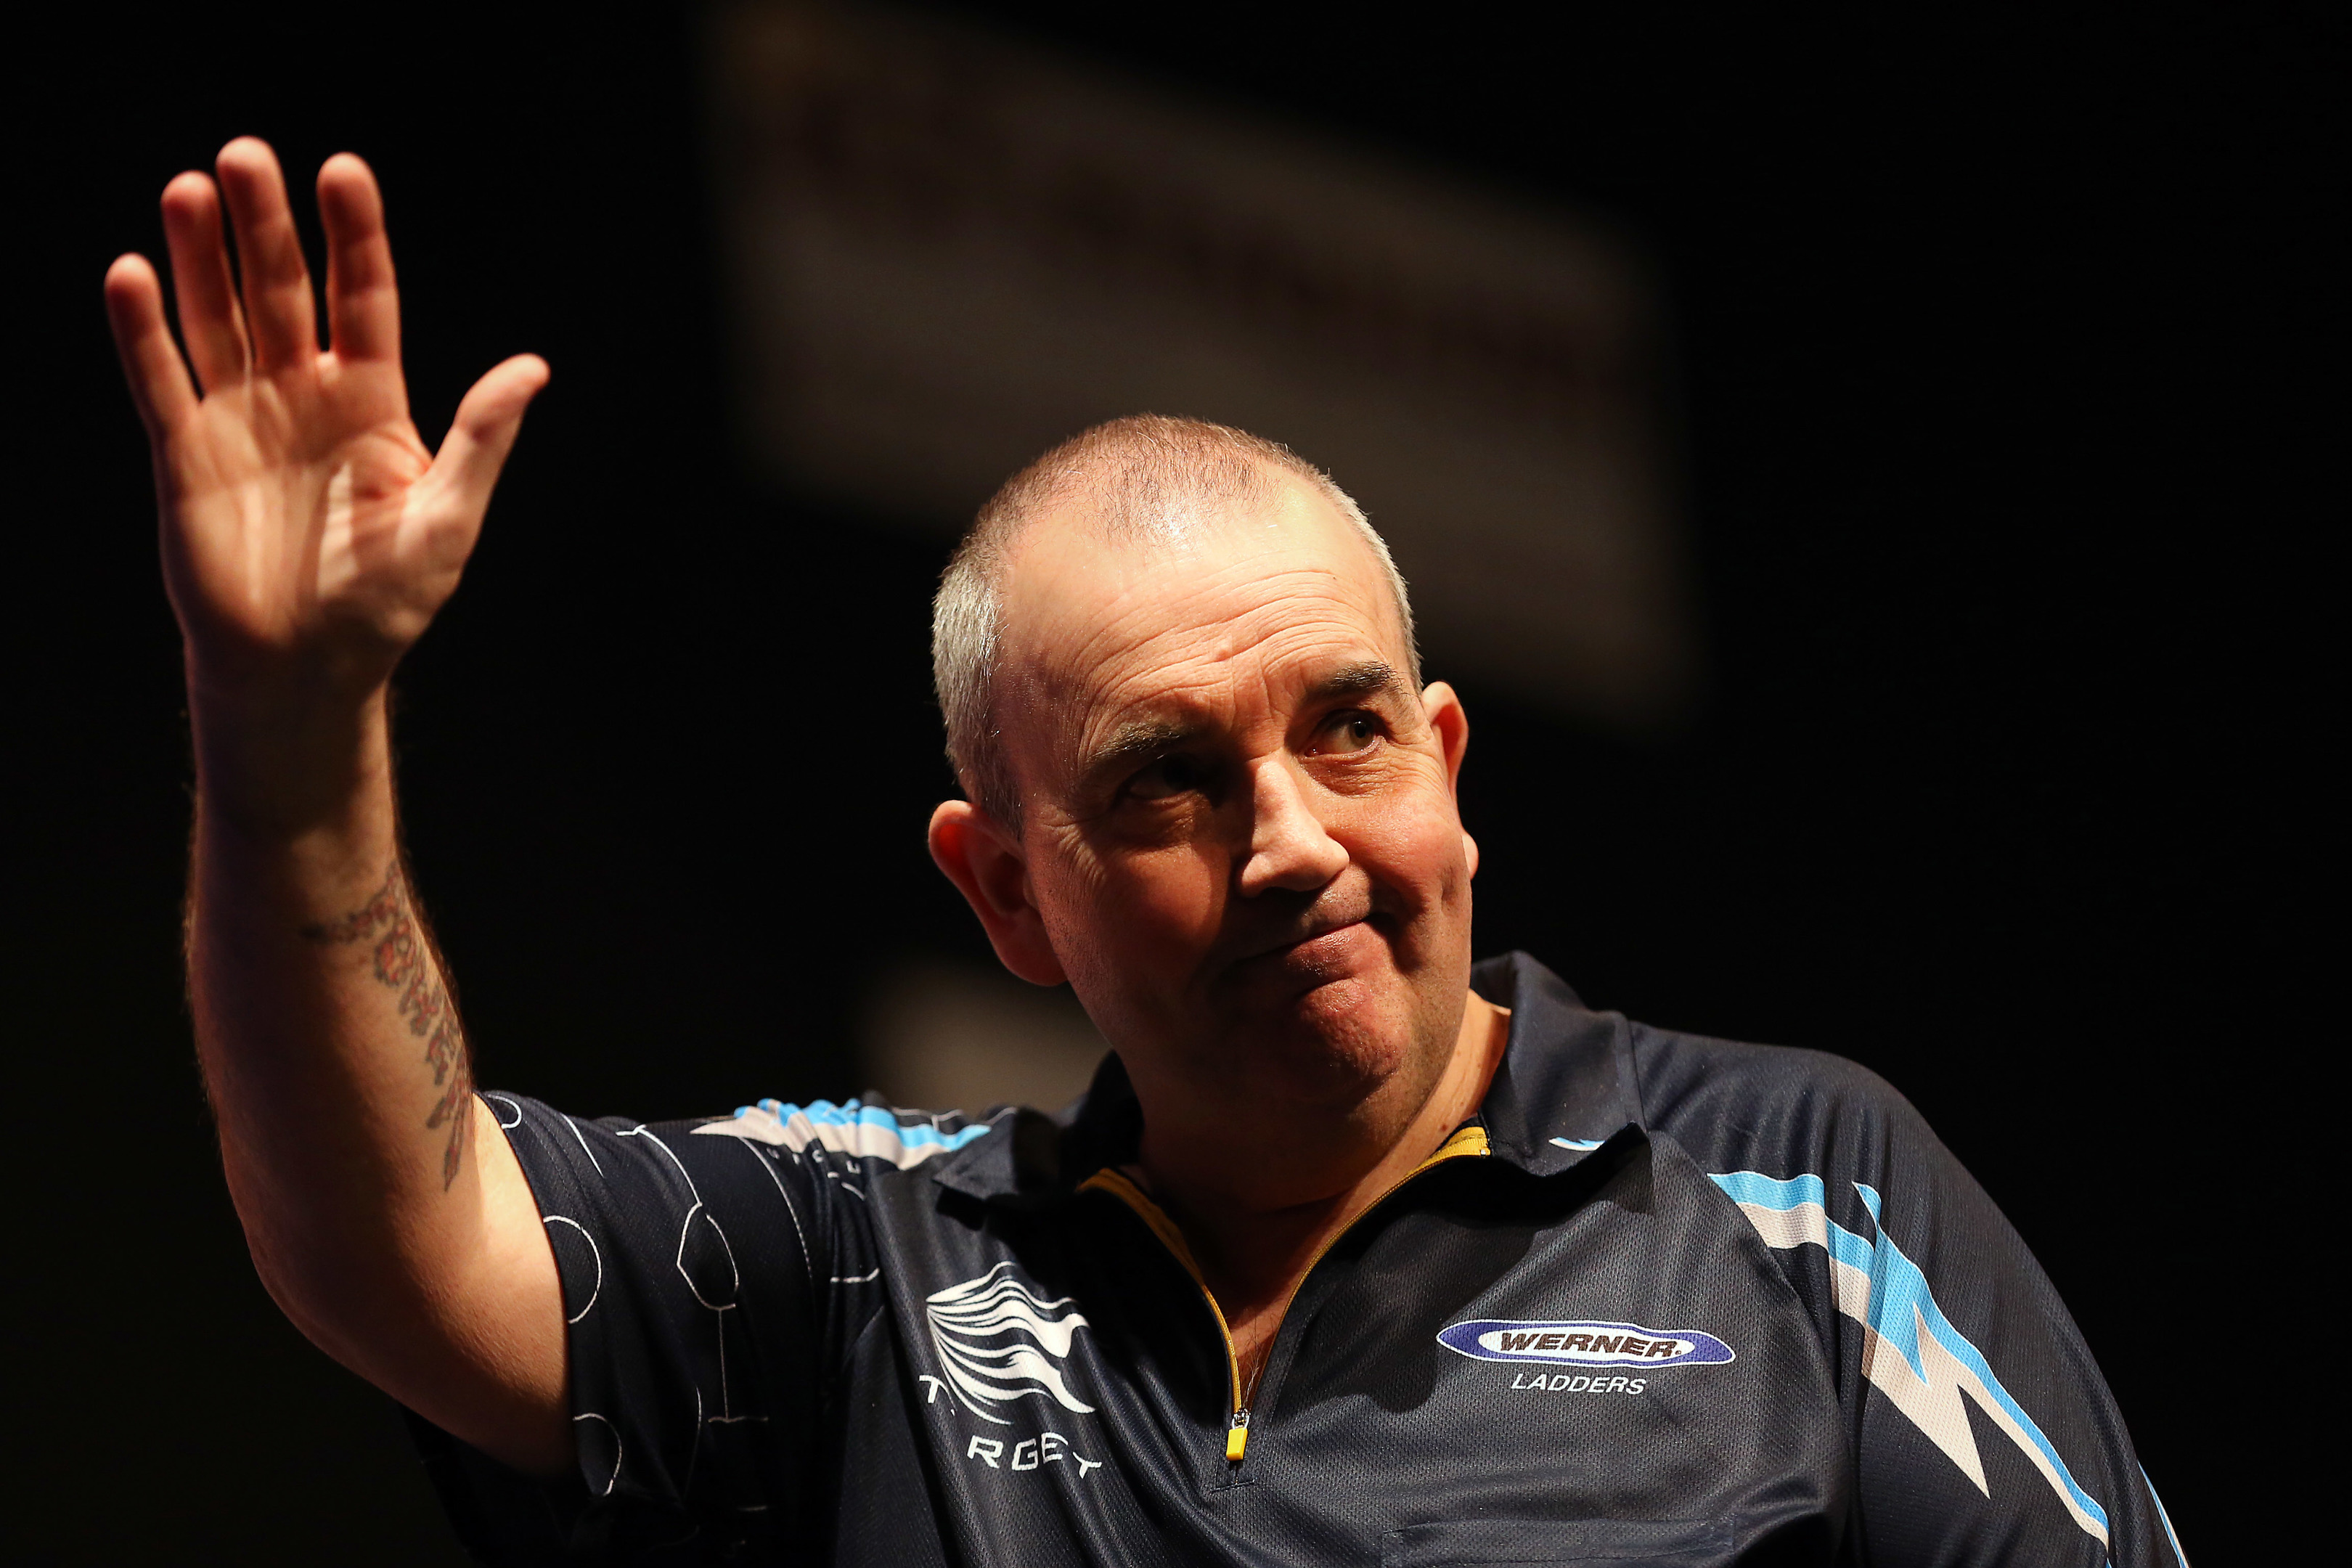 Phil 'the Power' Taylor will come to the area for a special darts event.